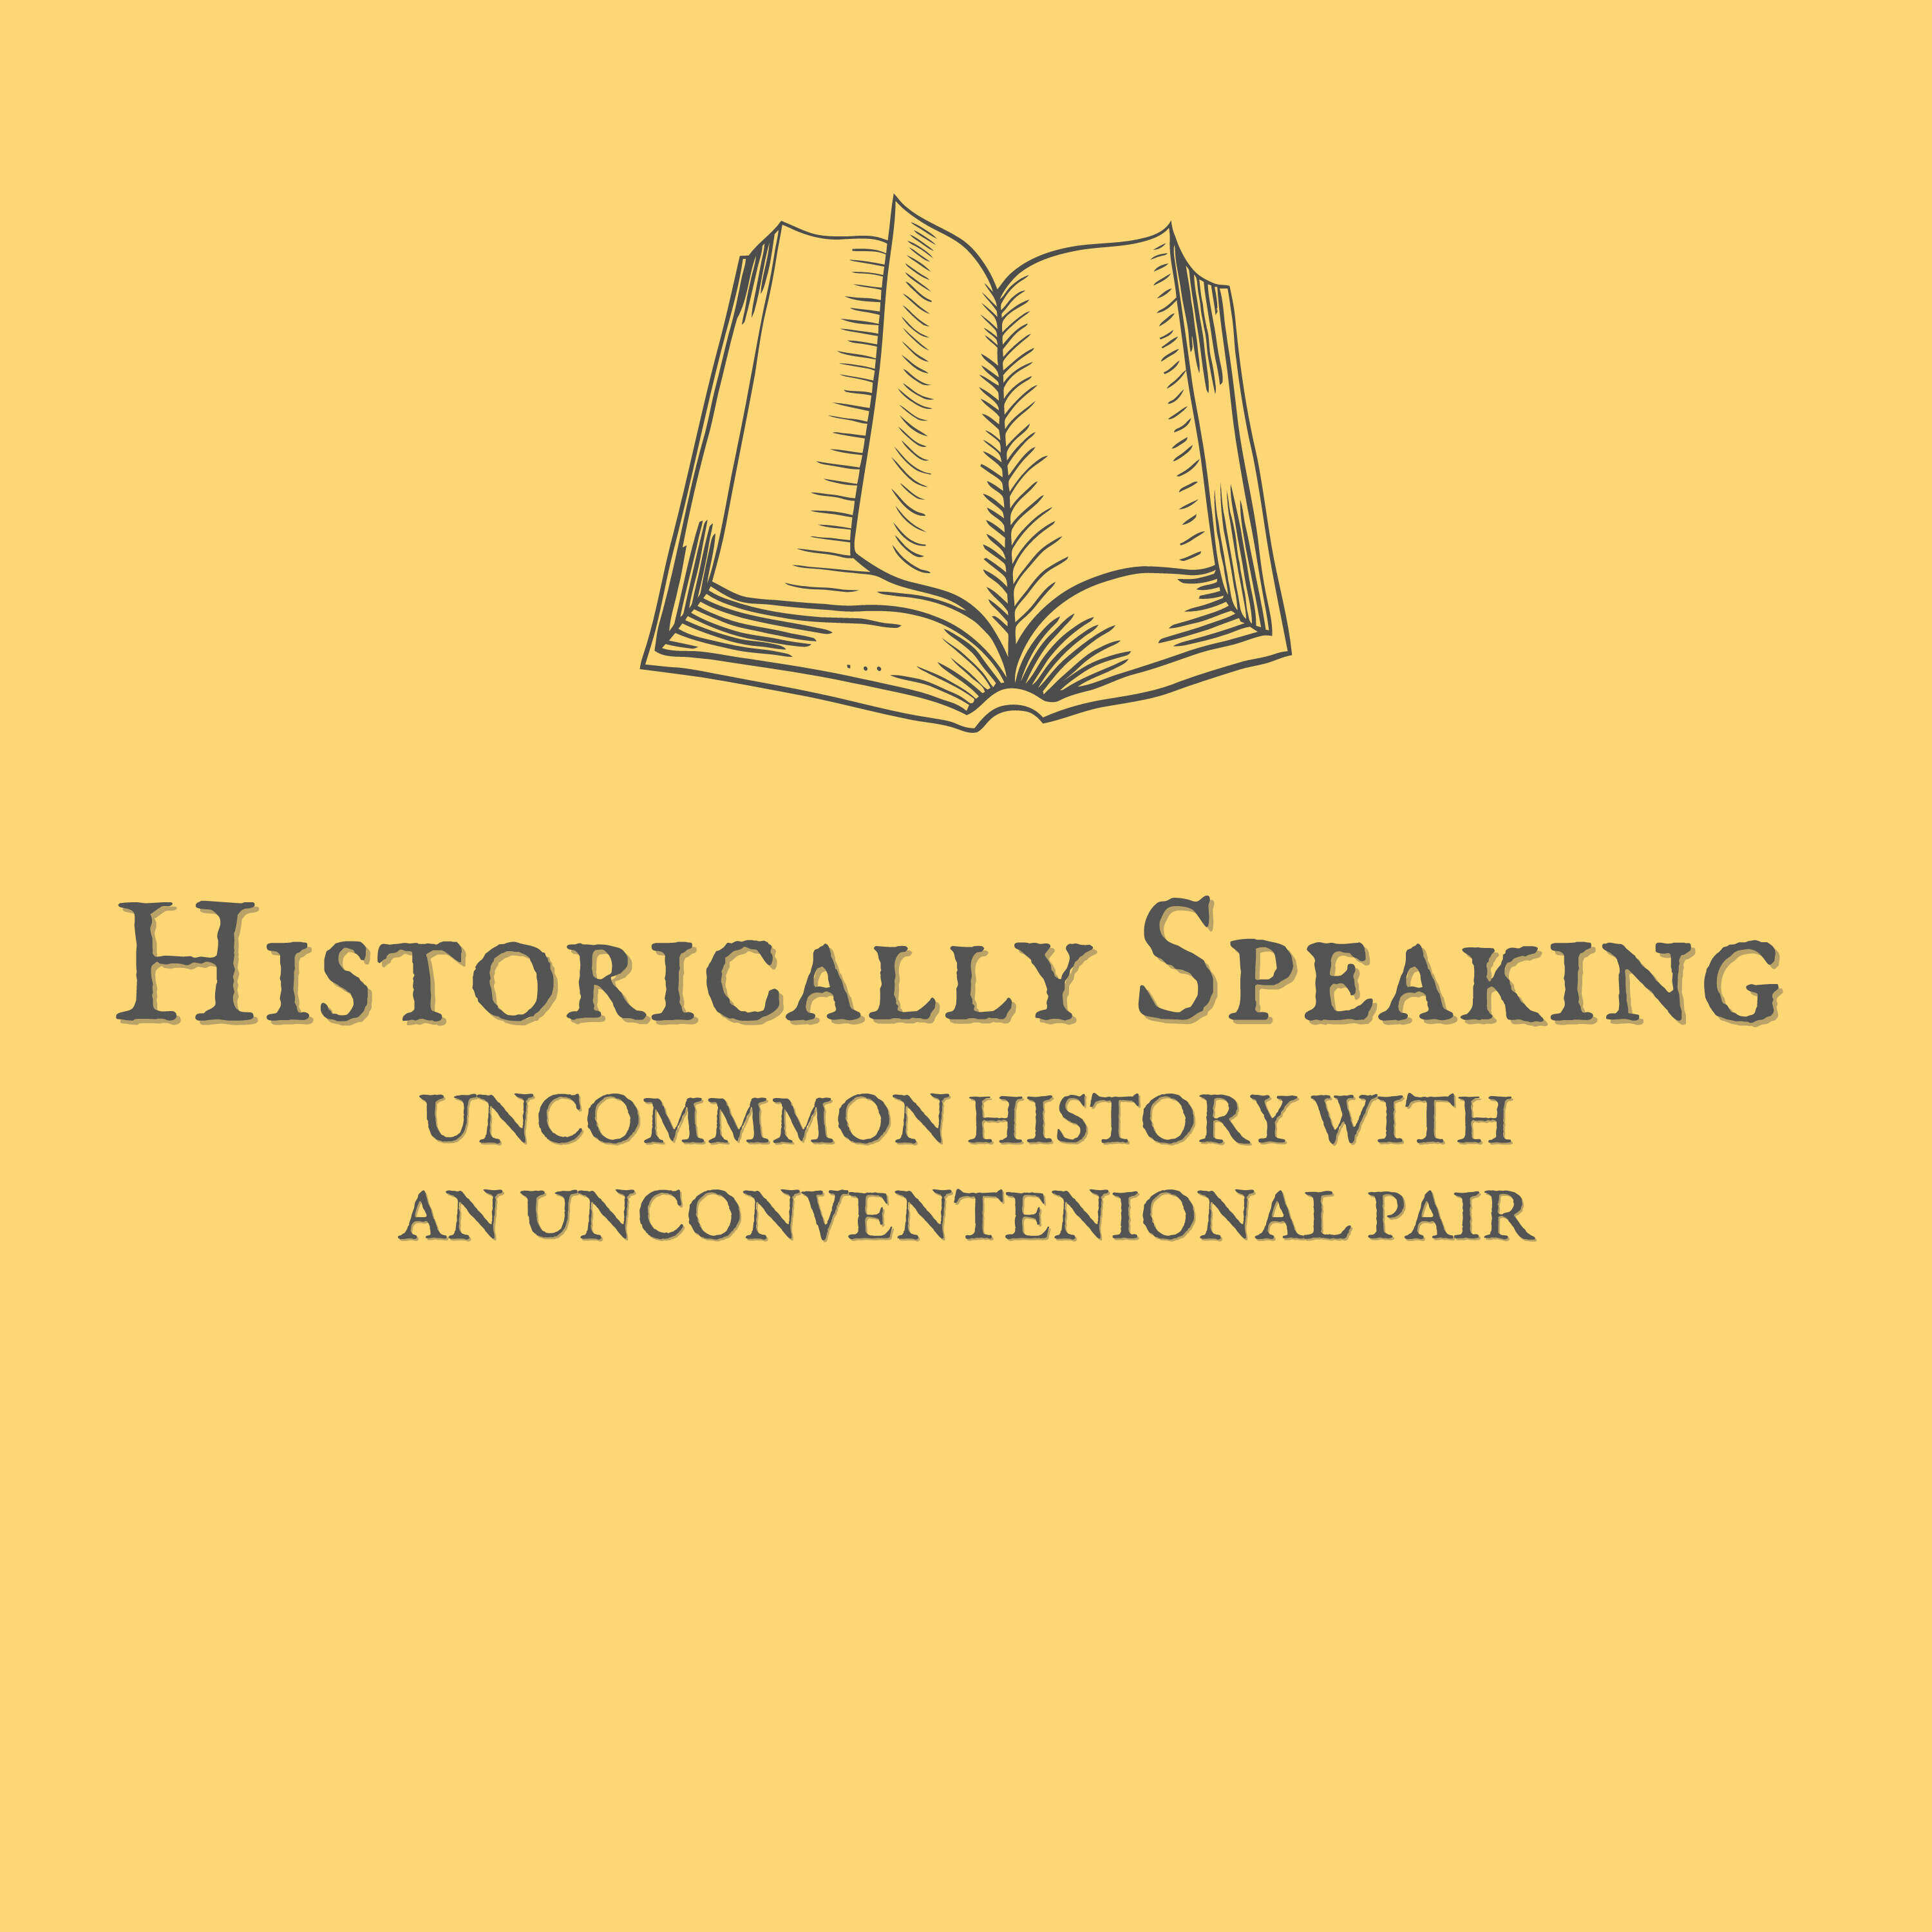 Historically Speaking-Uncommon History with an Unconventional Pair